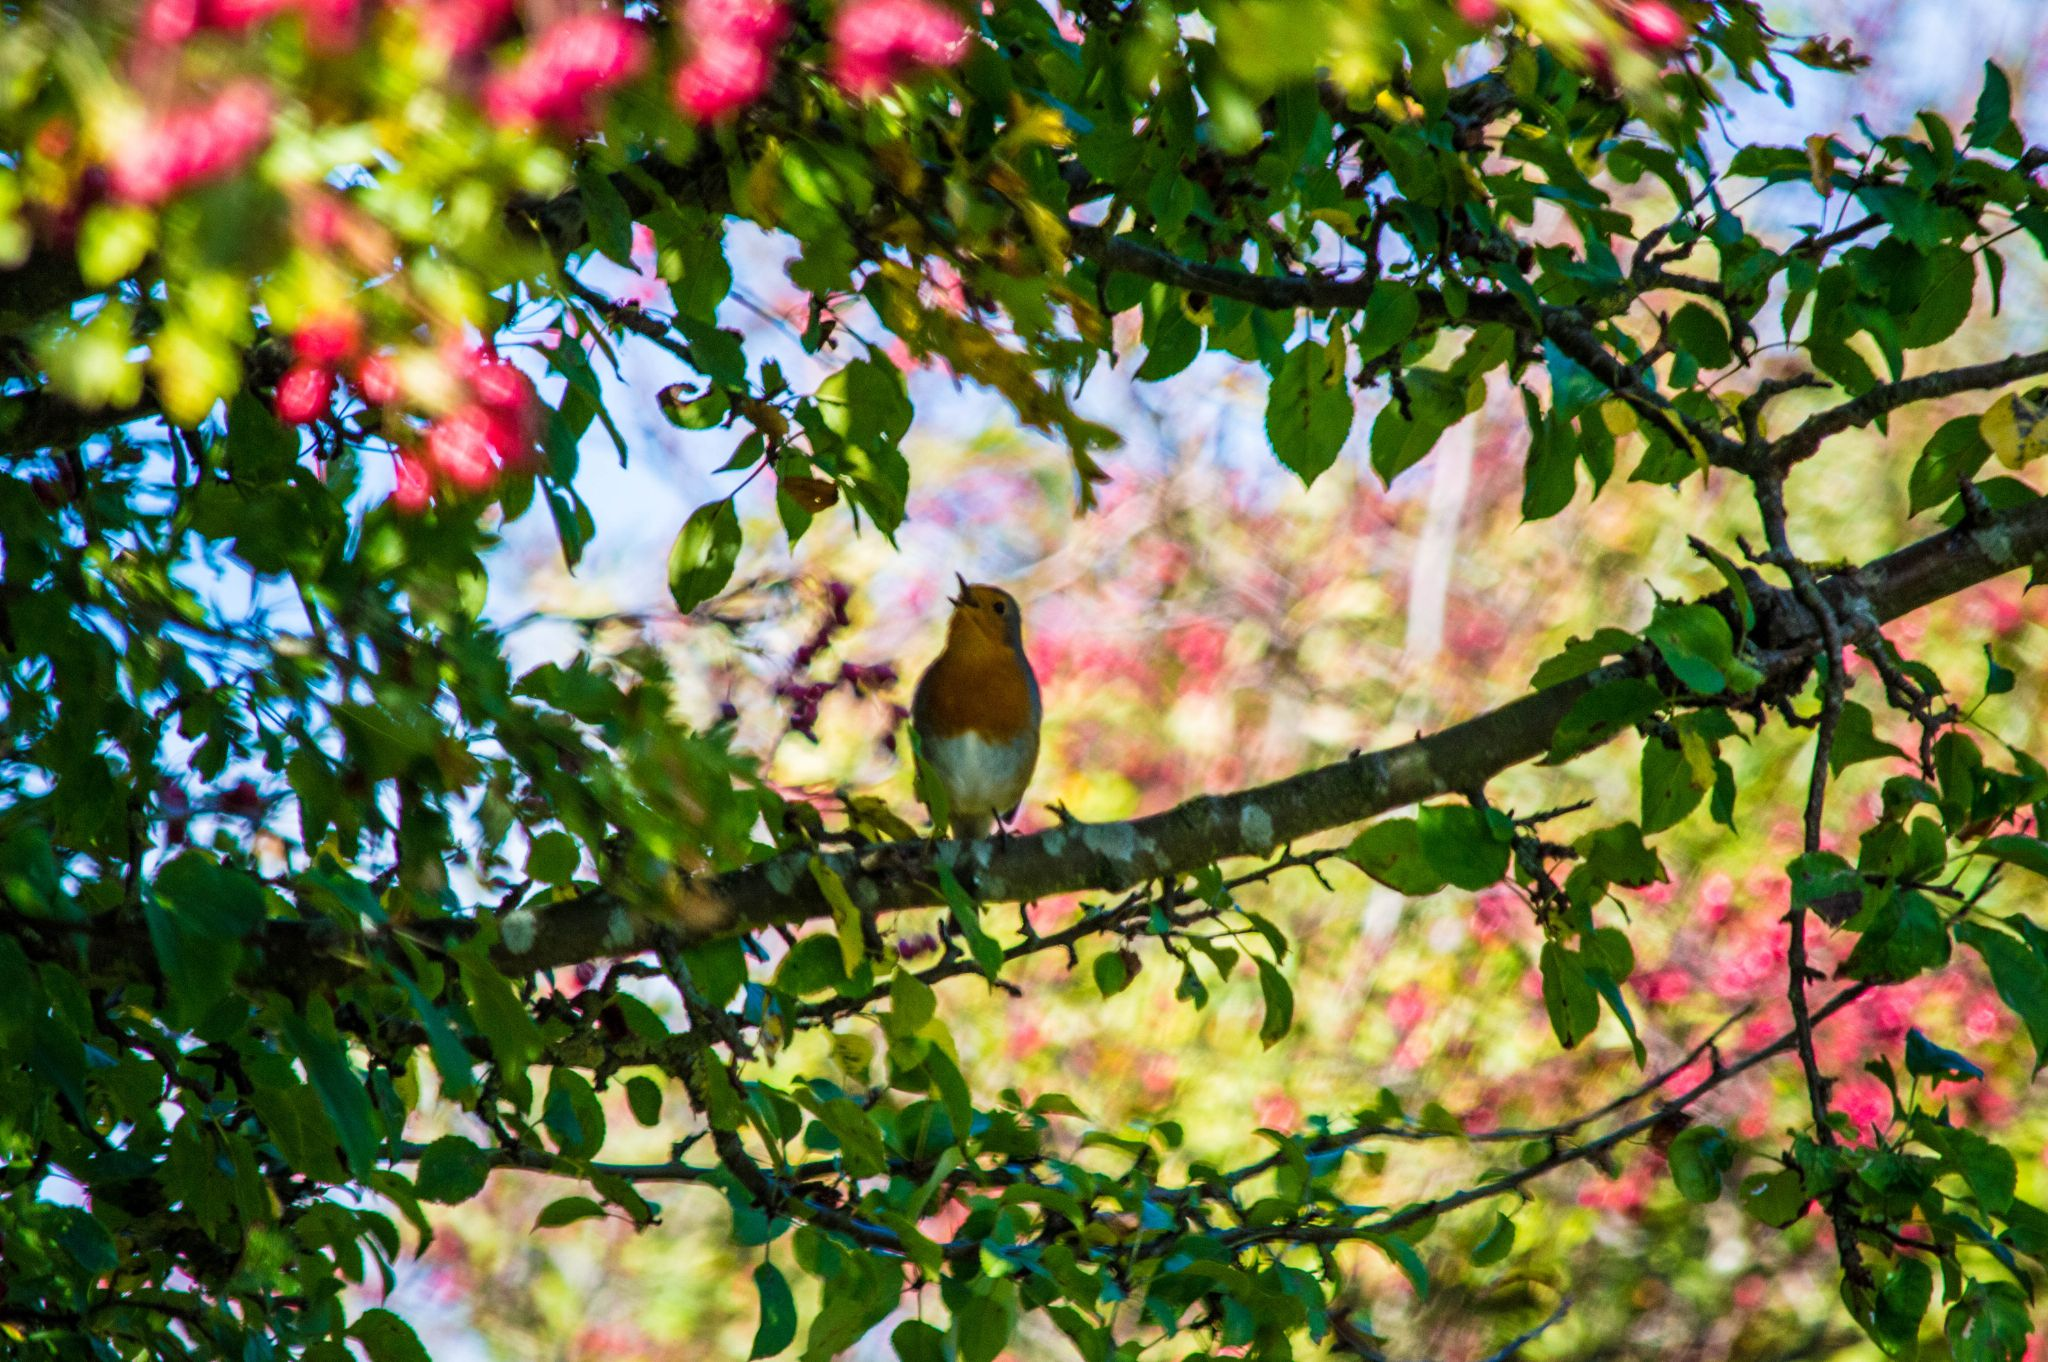 a robin in song by Robert Stephenson